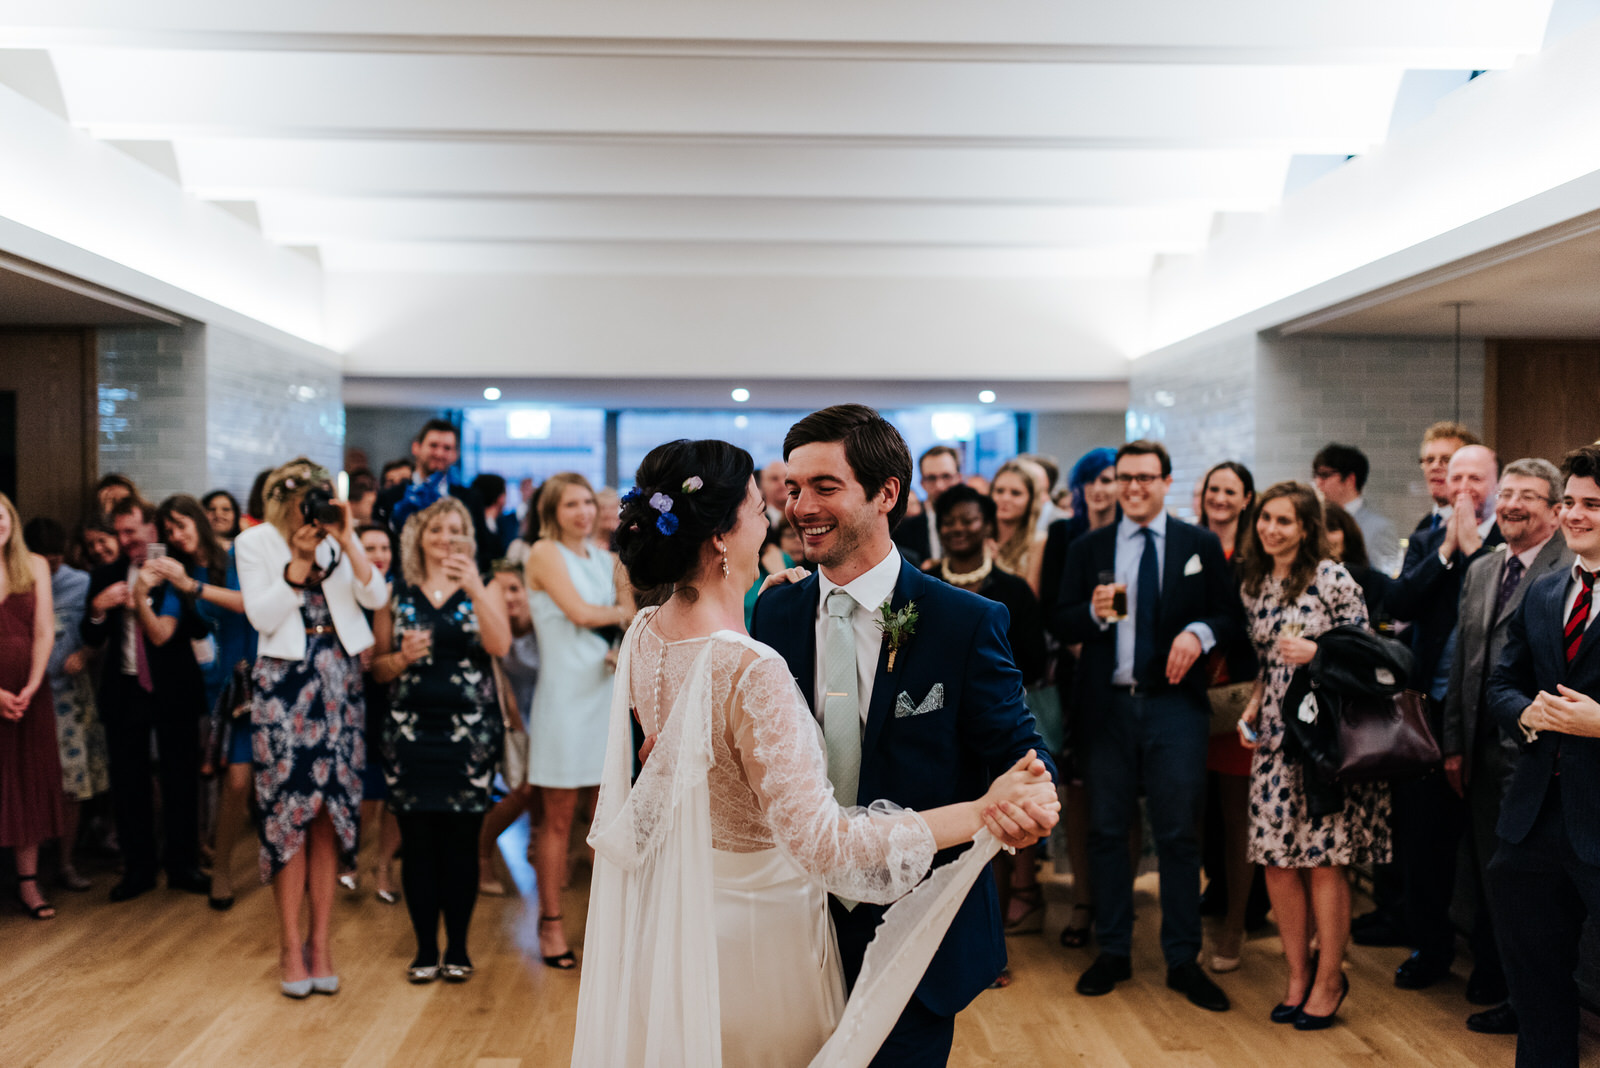 Bride and groom have their first dance in front of guests at Wes